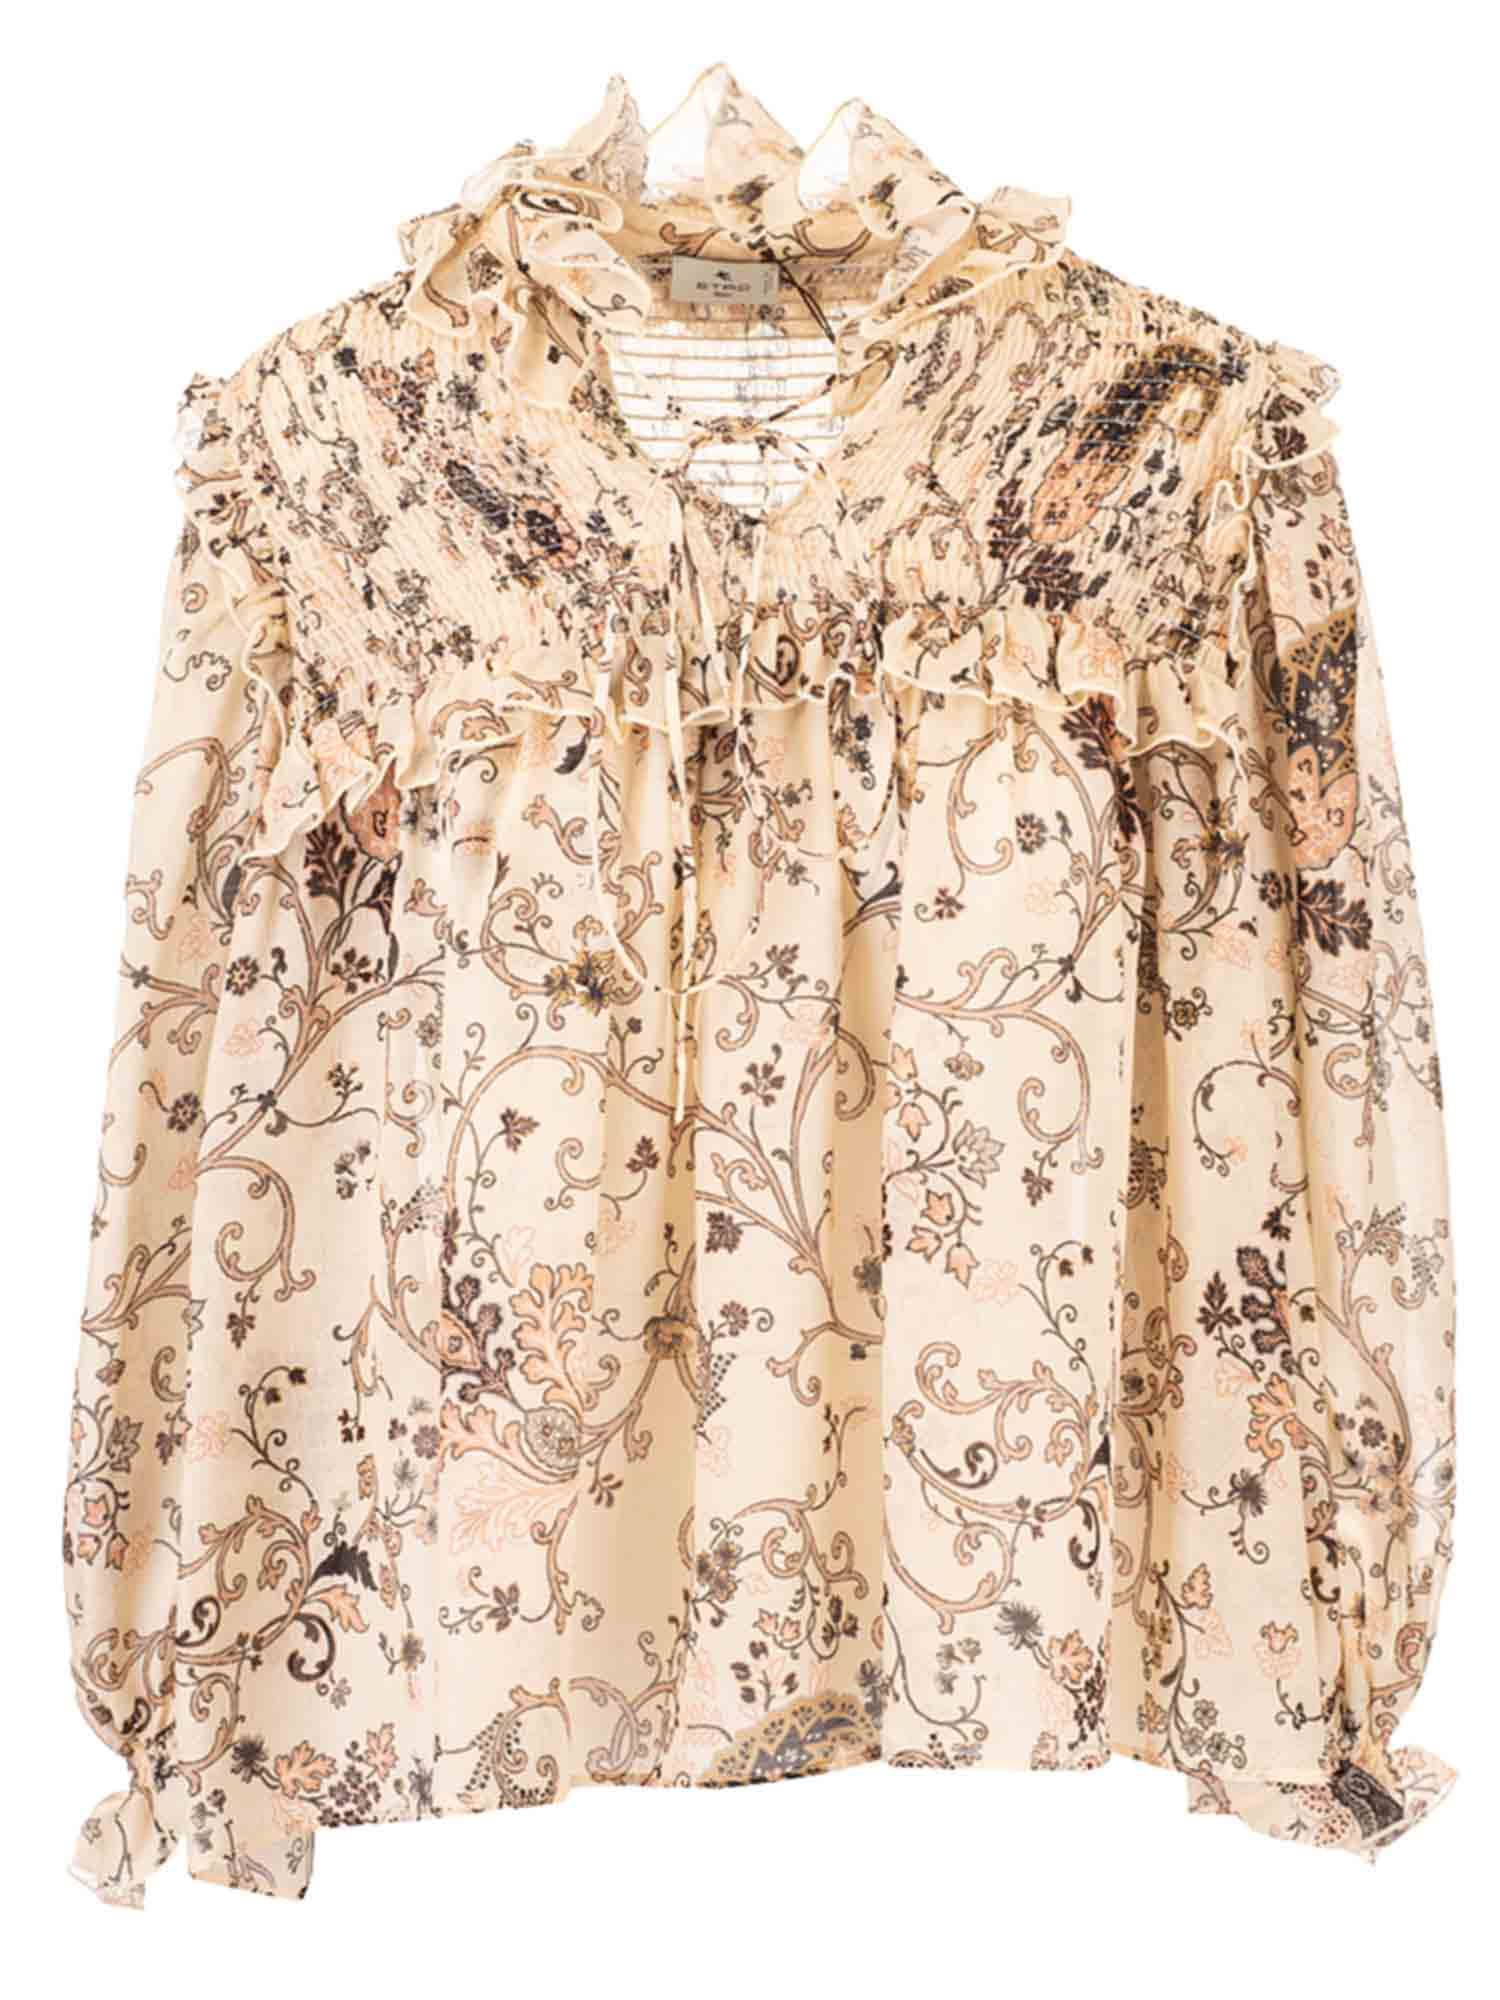 Etro Floral Blouse In Cream Color